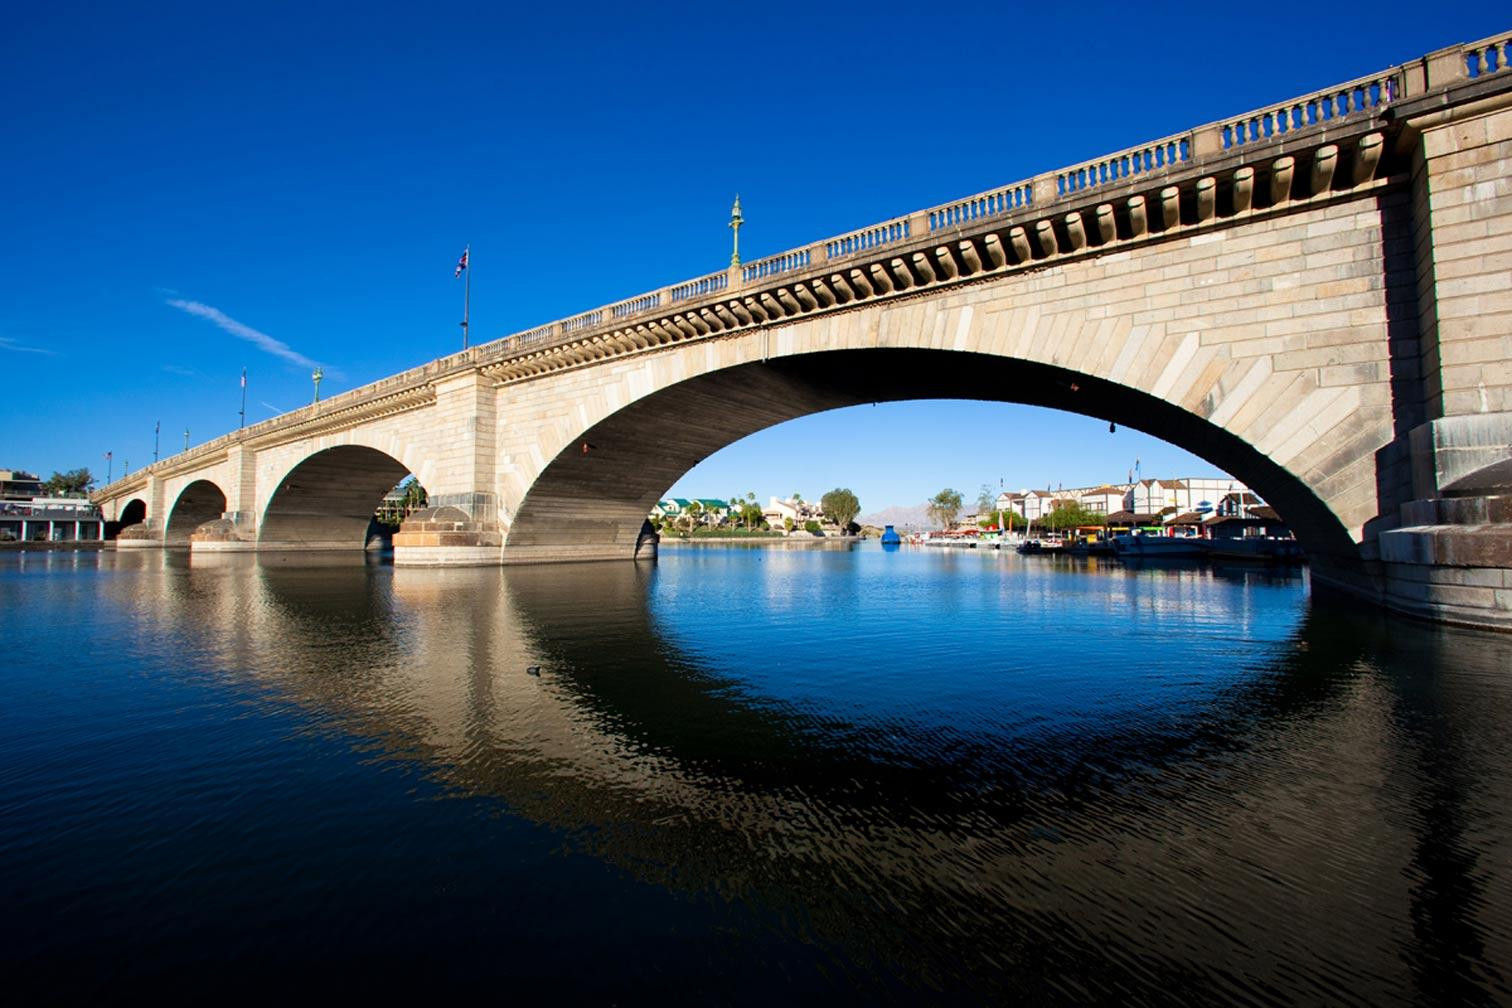 the london bridge The reconstructed london bridge was dedicated in lake havasu city on october 10, 1971 with many british and arizona officials participating in this event that drew 50,000 spectators.